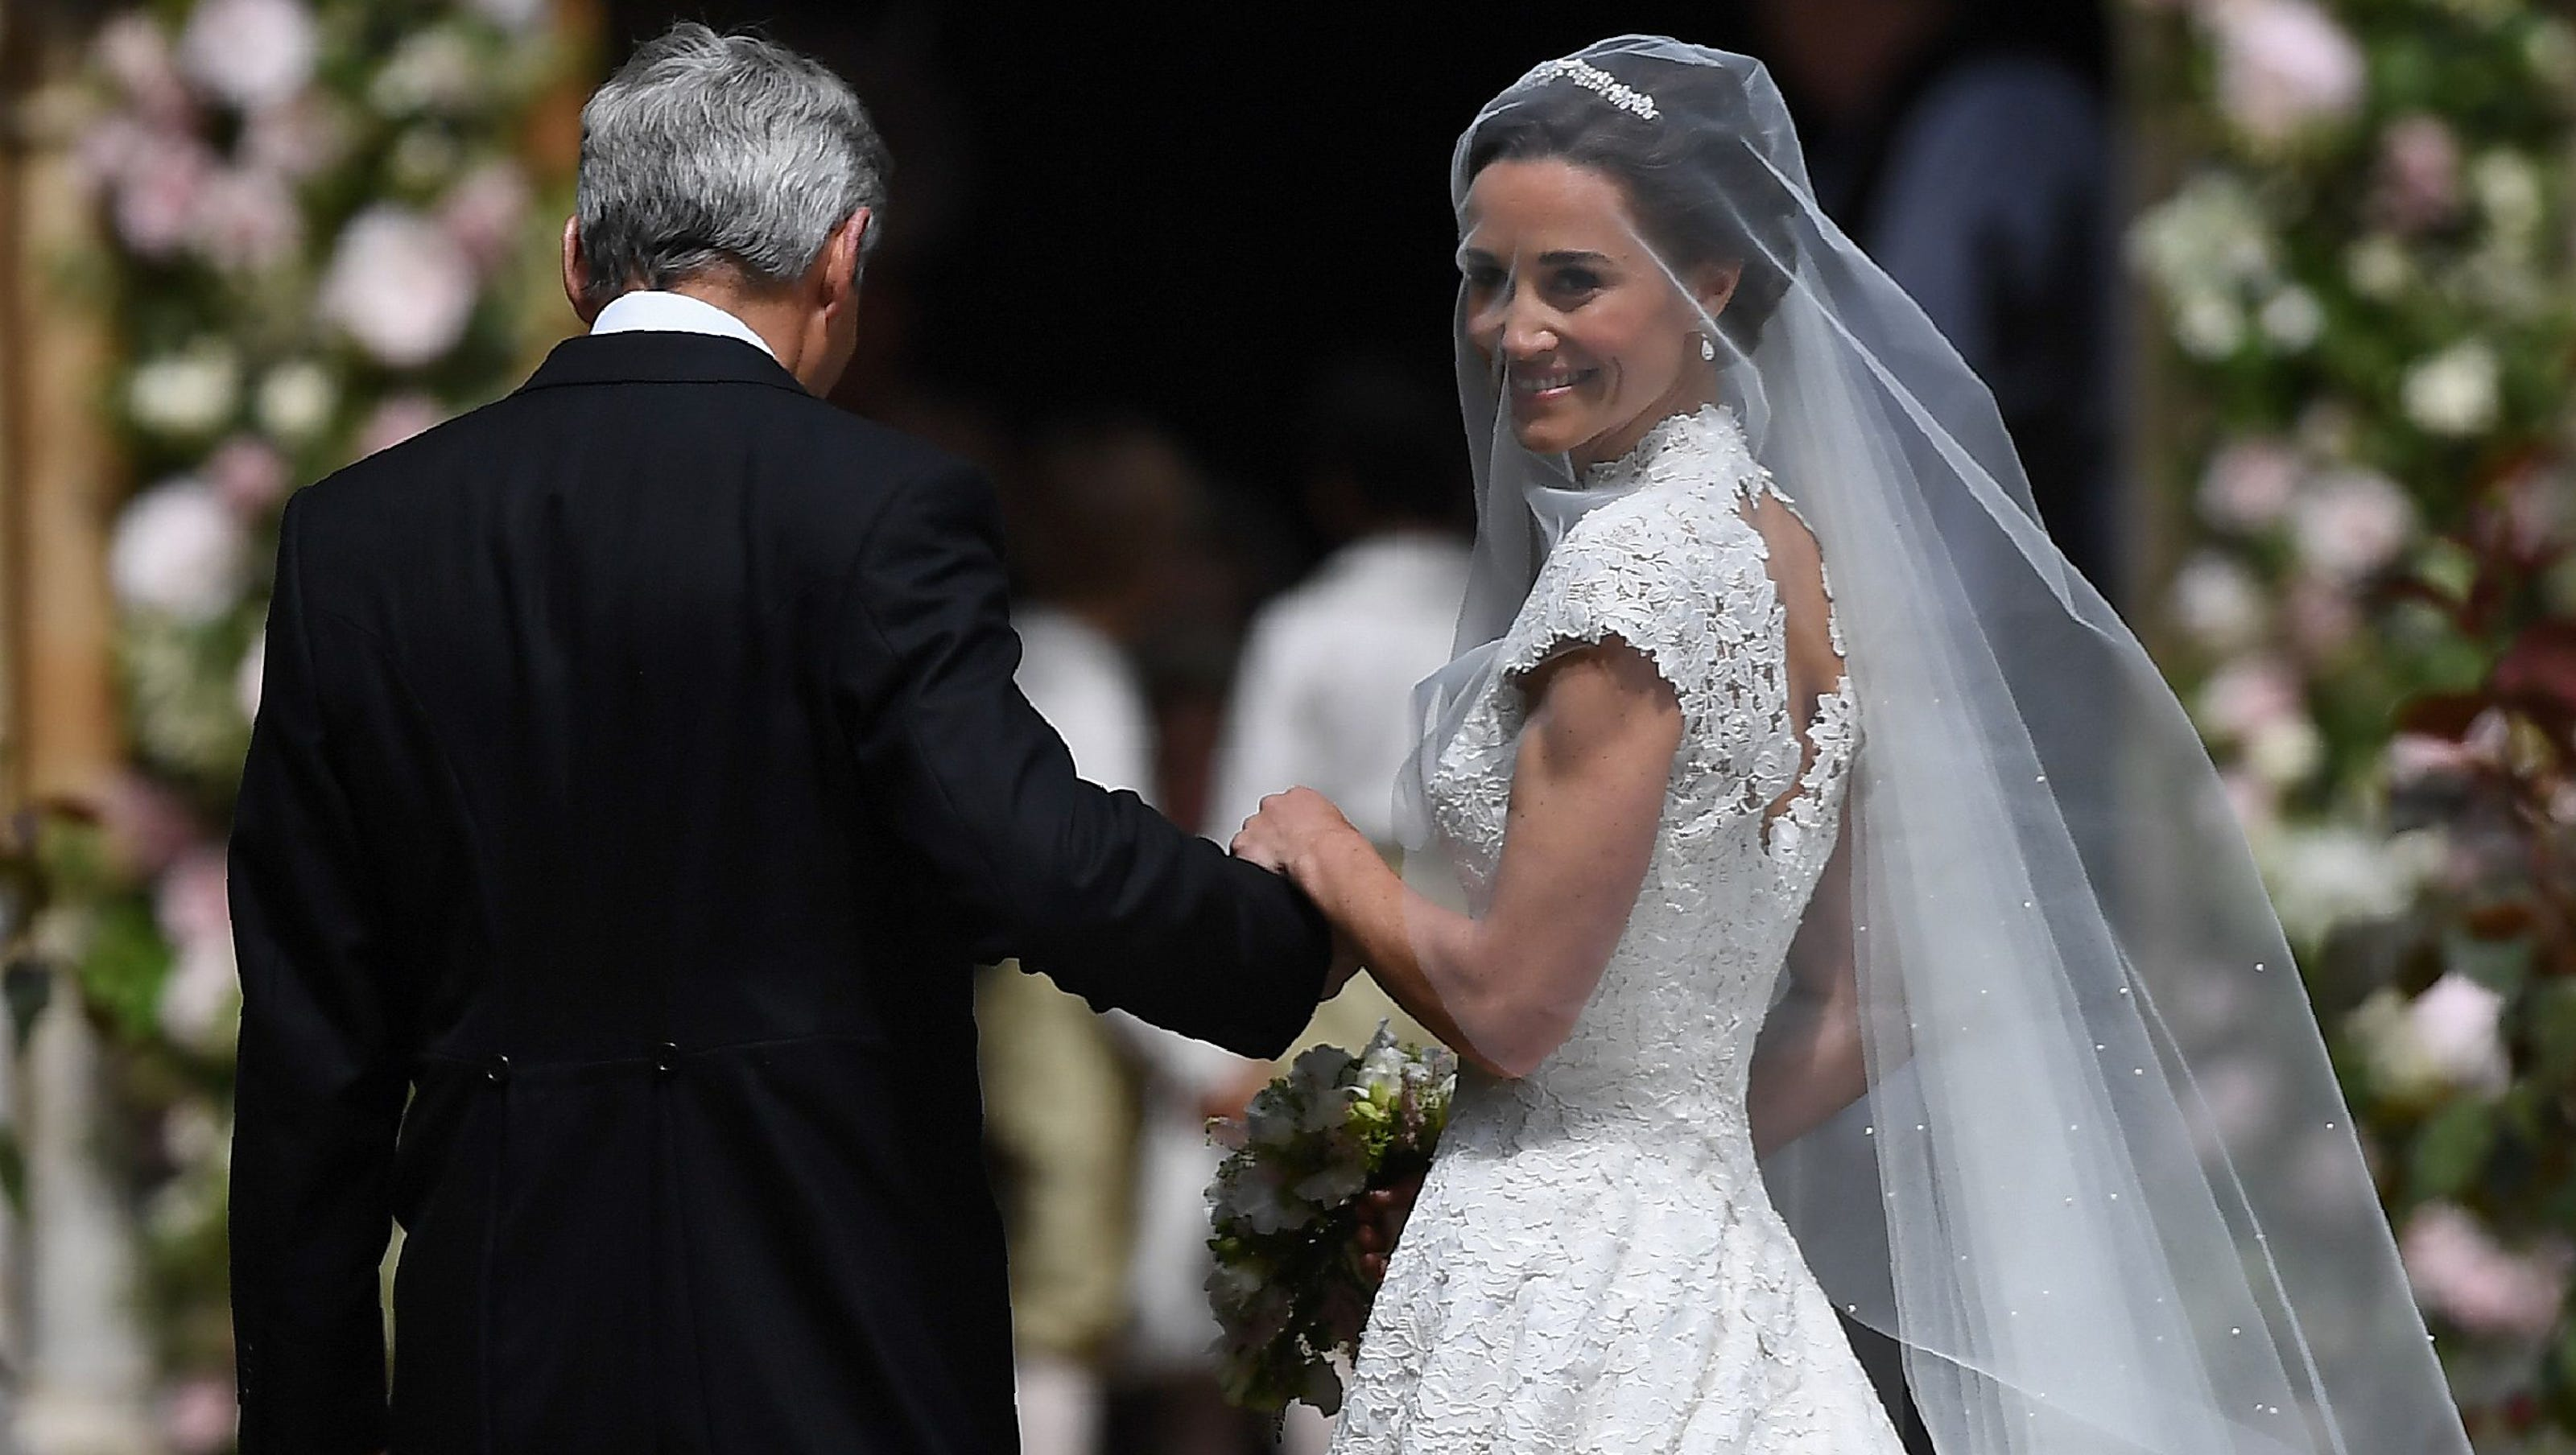 Pippa Middleton s wedding Get the details on her stunning dress by